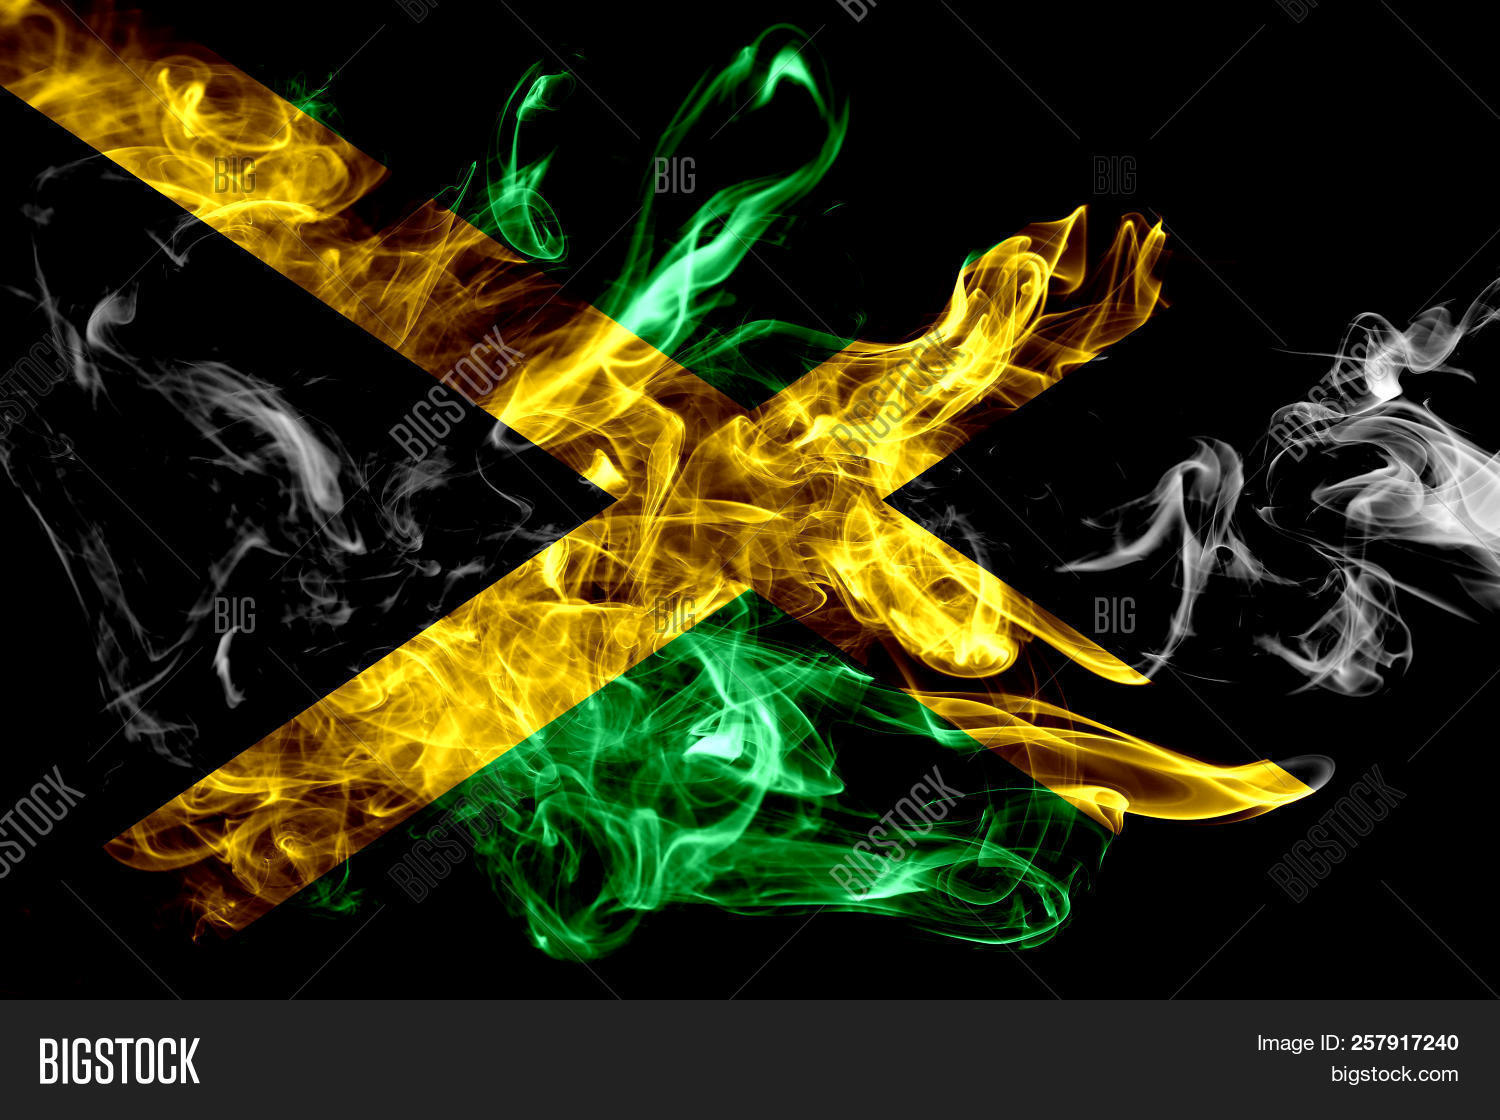 National Flag Jamaica Image Amp Photo Free Trial